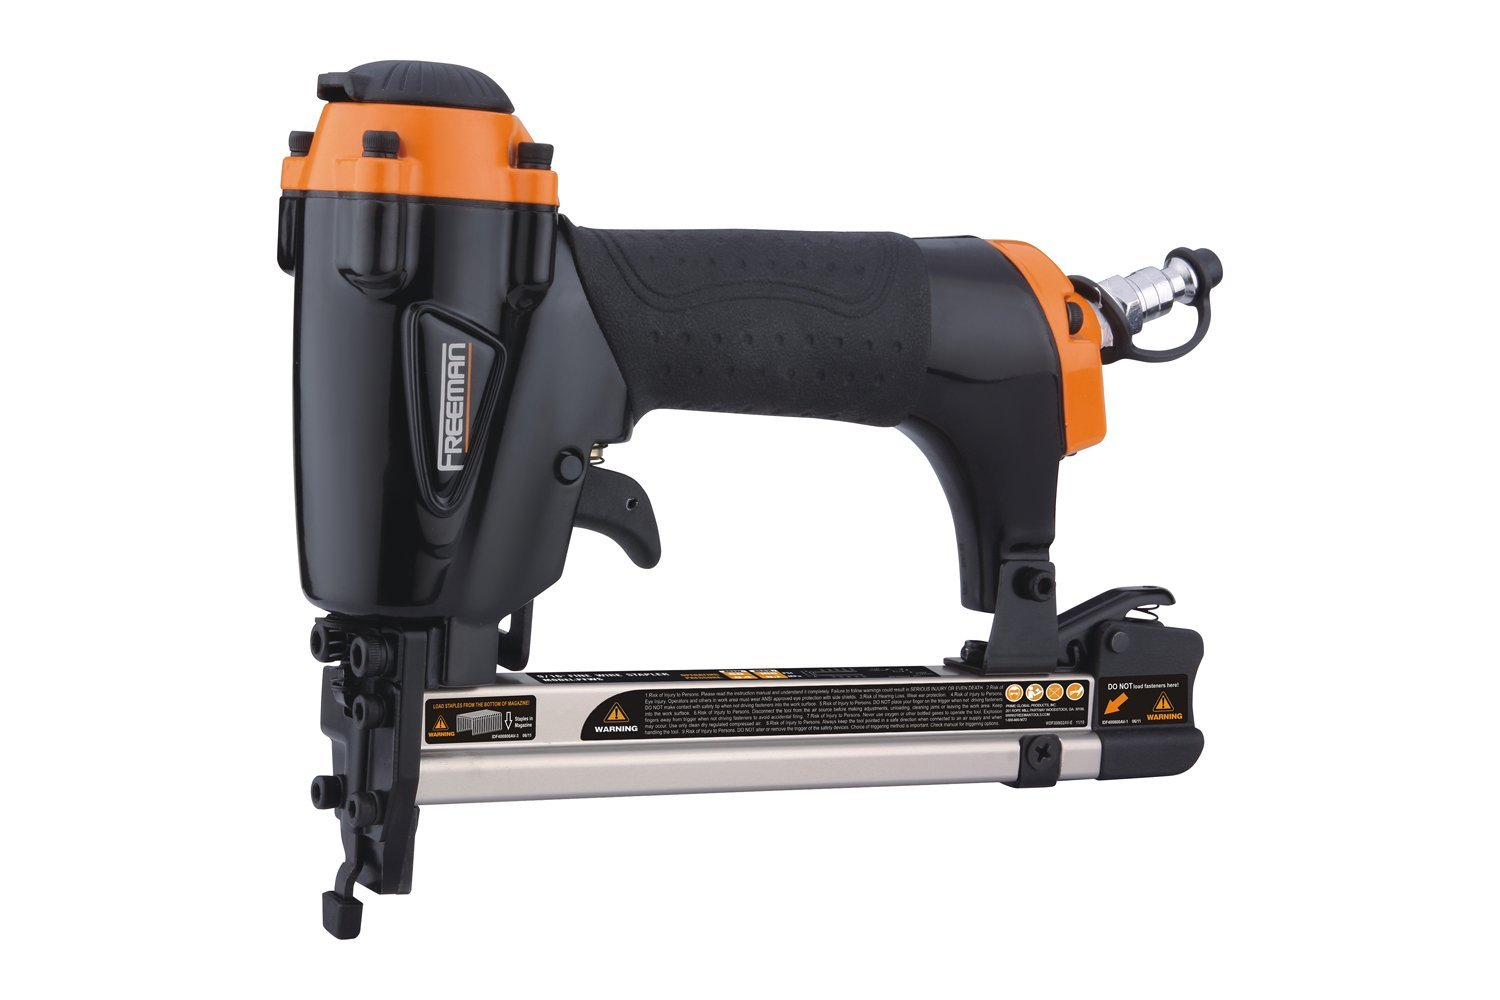 Freeman PFWS Professional Fine Wire Stapler | Staple Gun Reviews